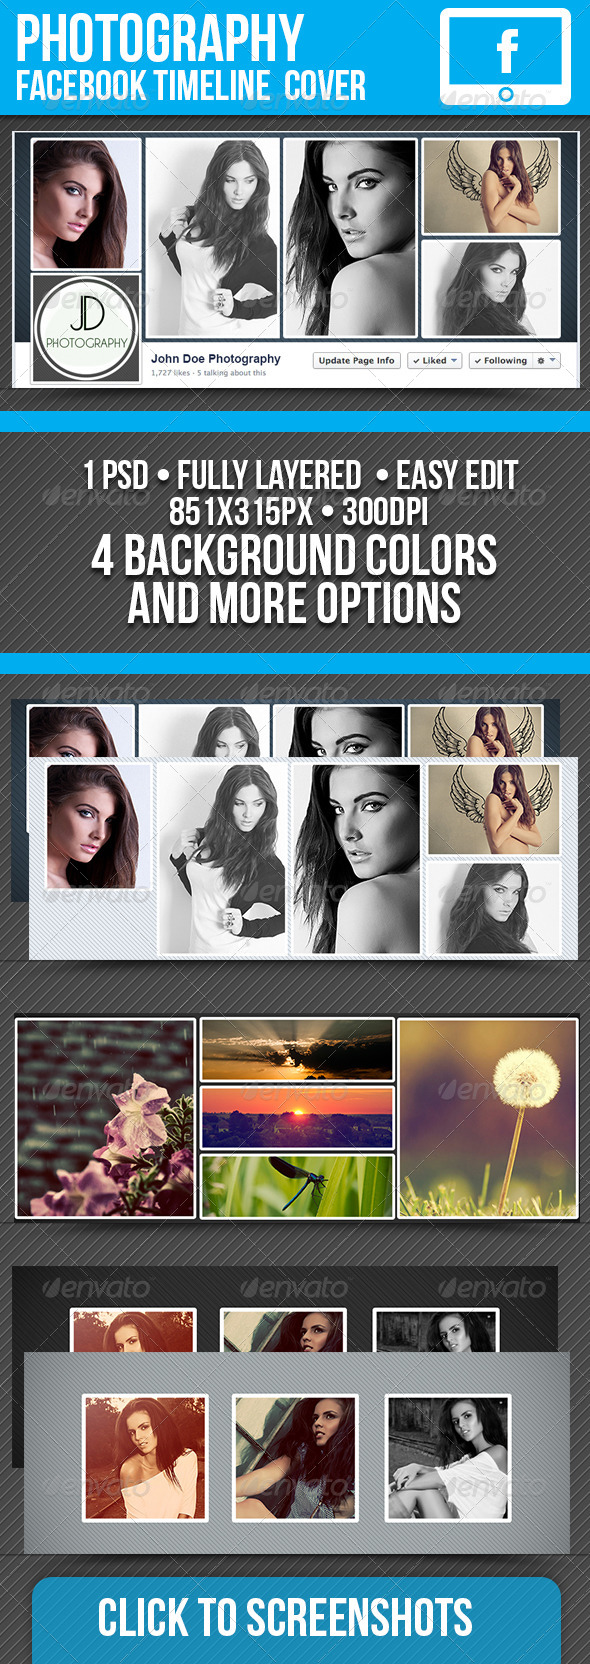 GraphicRiver Fashion Facebook Timeline Cover 7381896